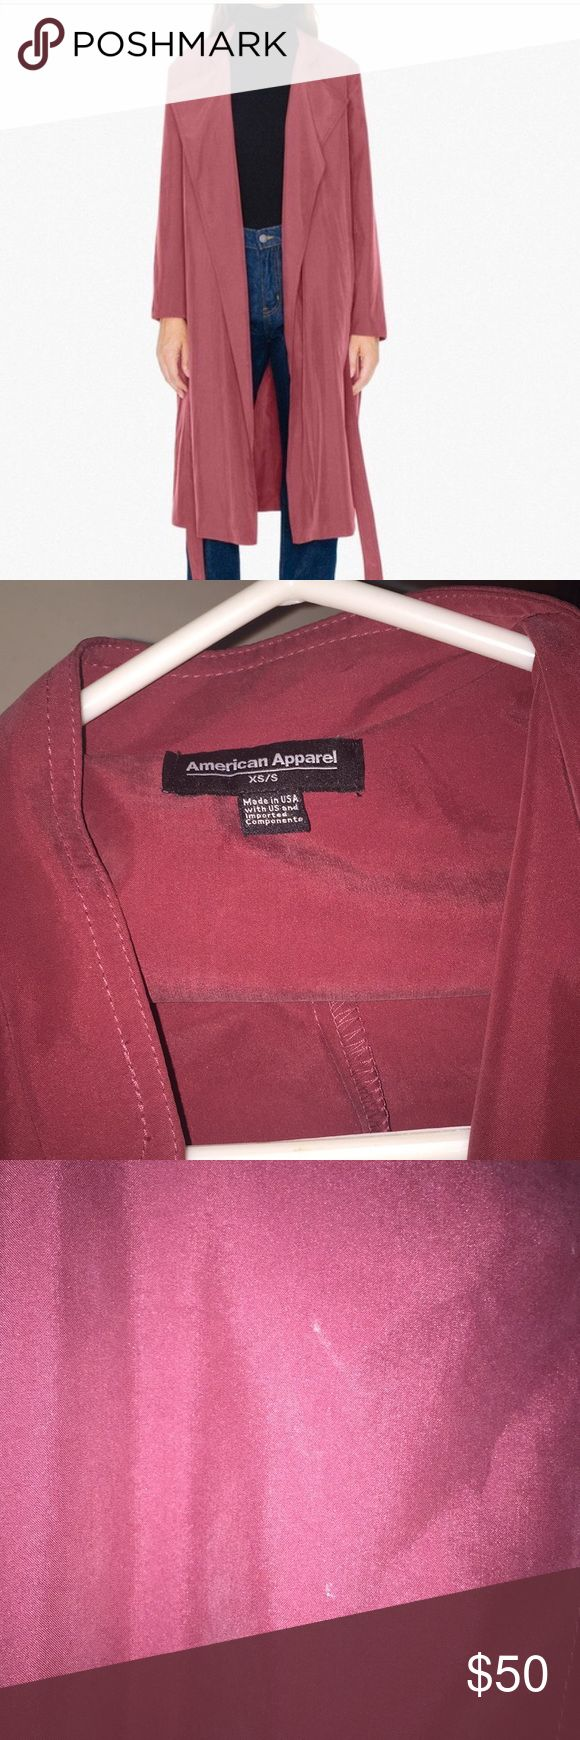 American Apparel Dylan Trench Coat This beautiful coat in the color Cabernet has only been worn 3x. Light weight and perfect for Spring. Only has a very light white streak on collar. NO TRADE. XS/S American Apparel Jackets & Coats Trench Coats